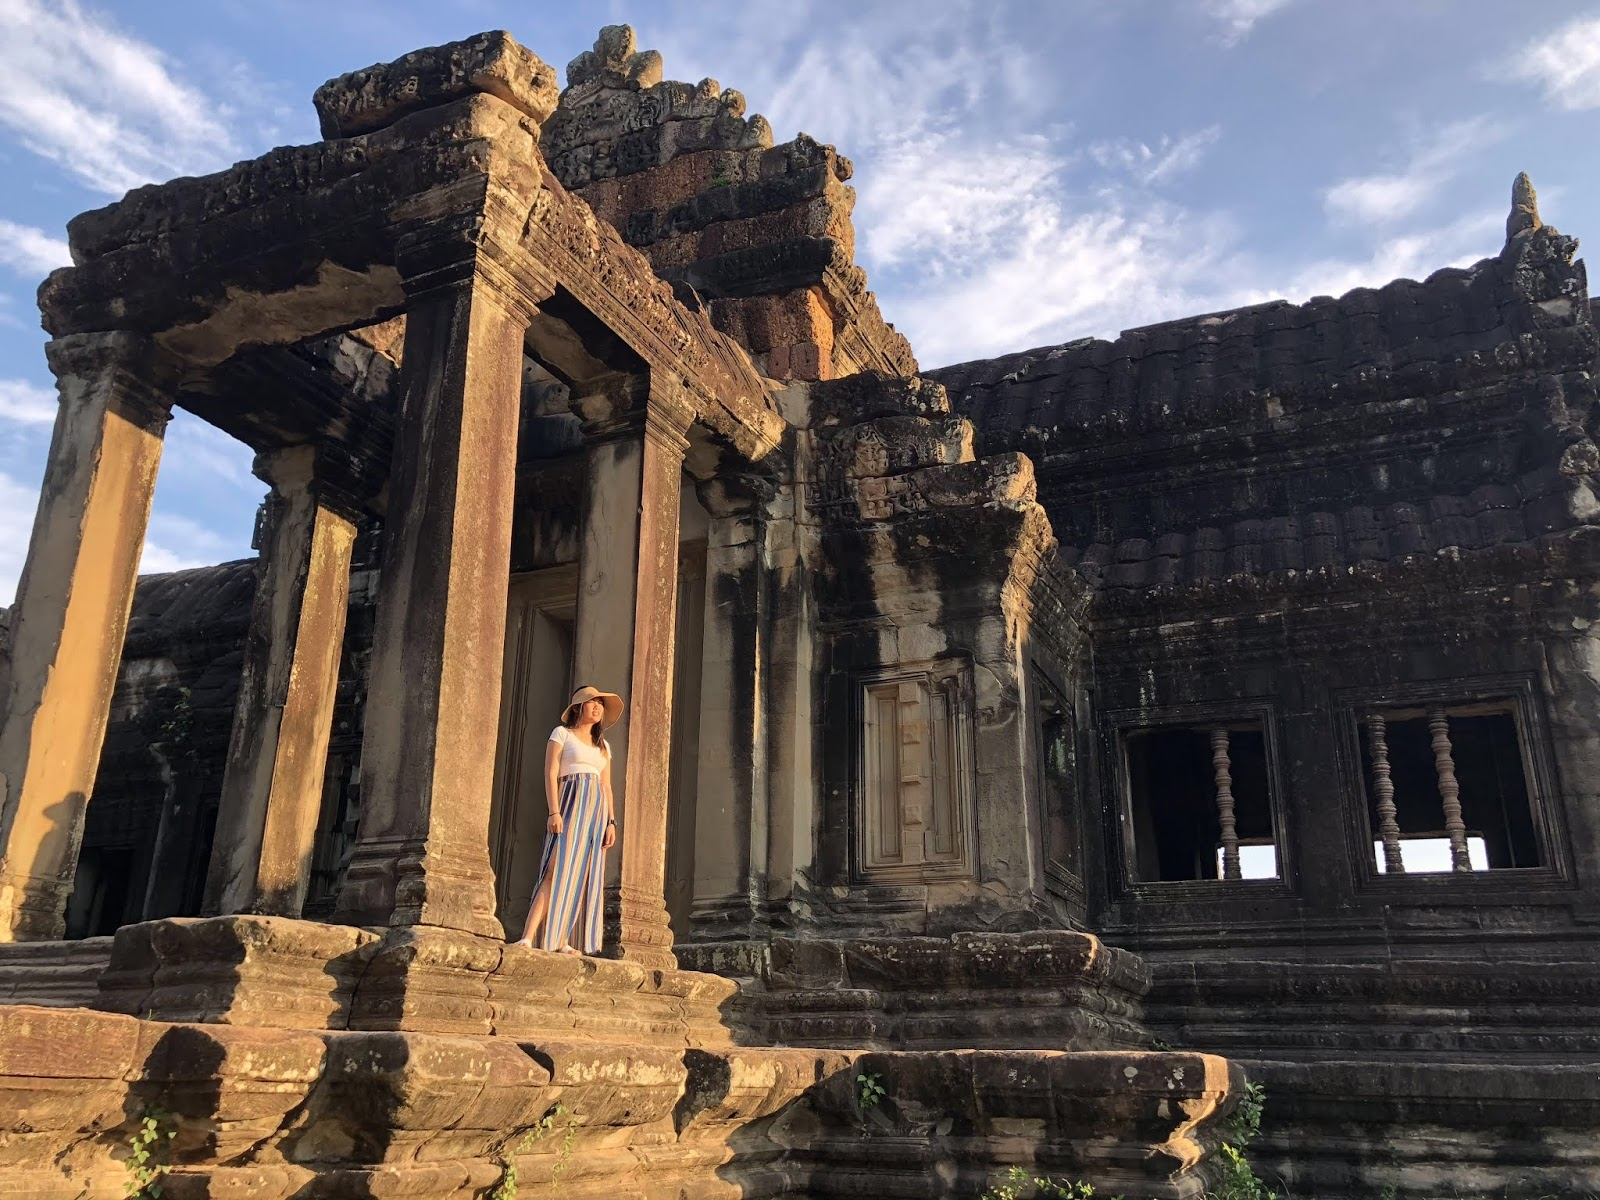 Looking and marveling the beauty of Angkor Wat